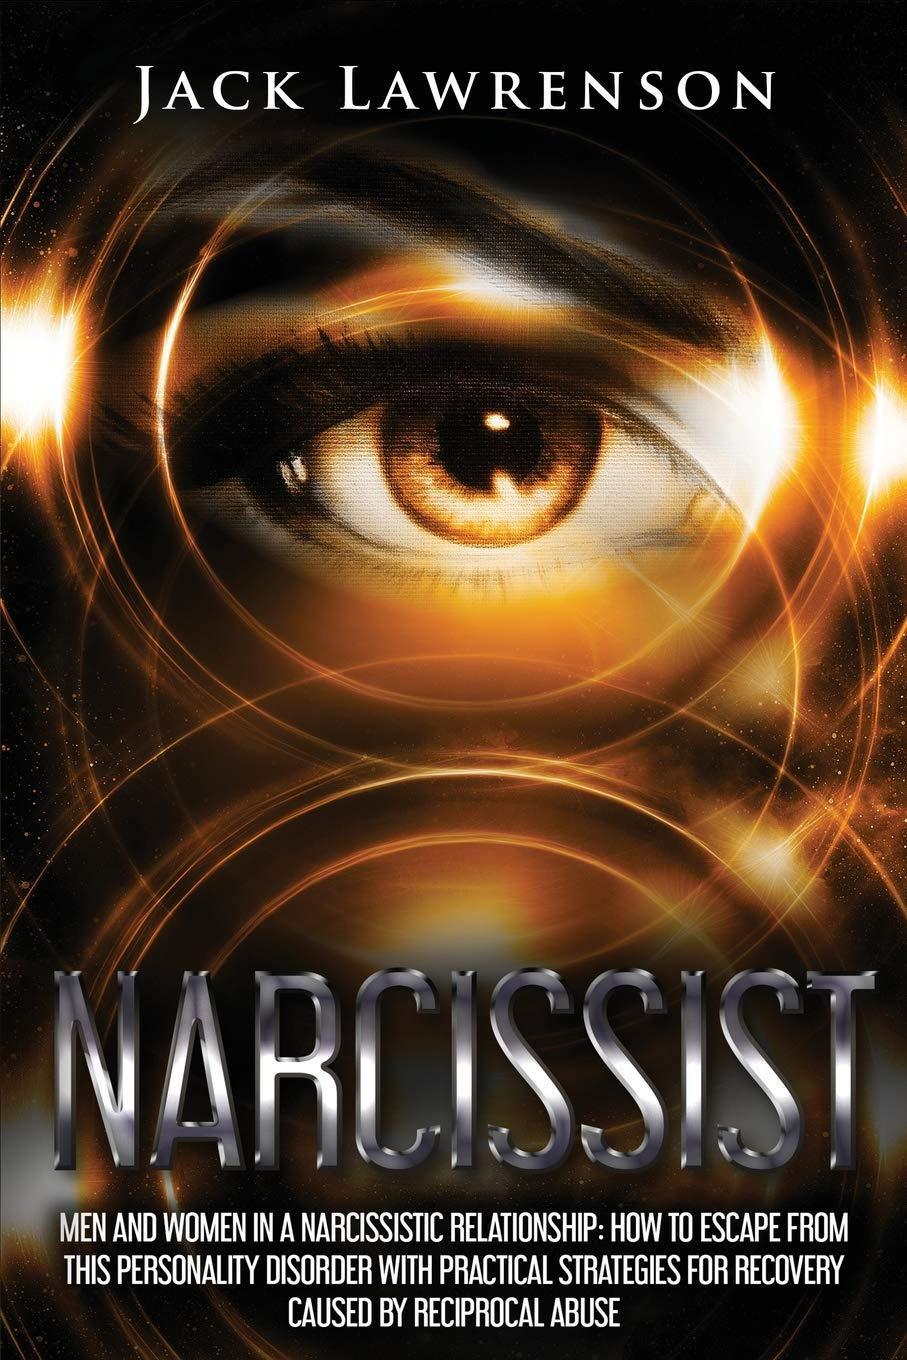 Narcissist: Men and Women In a Narcissistic Relationship